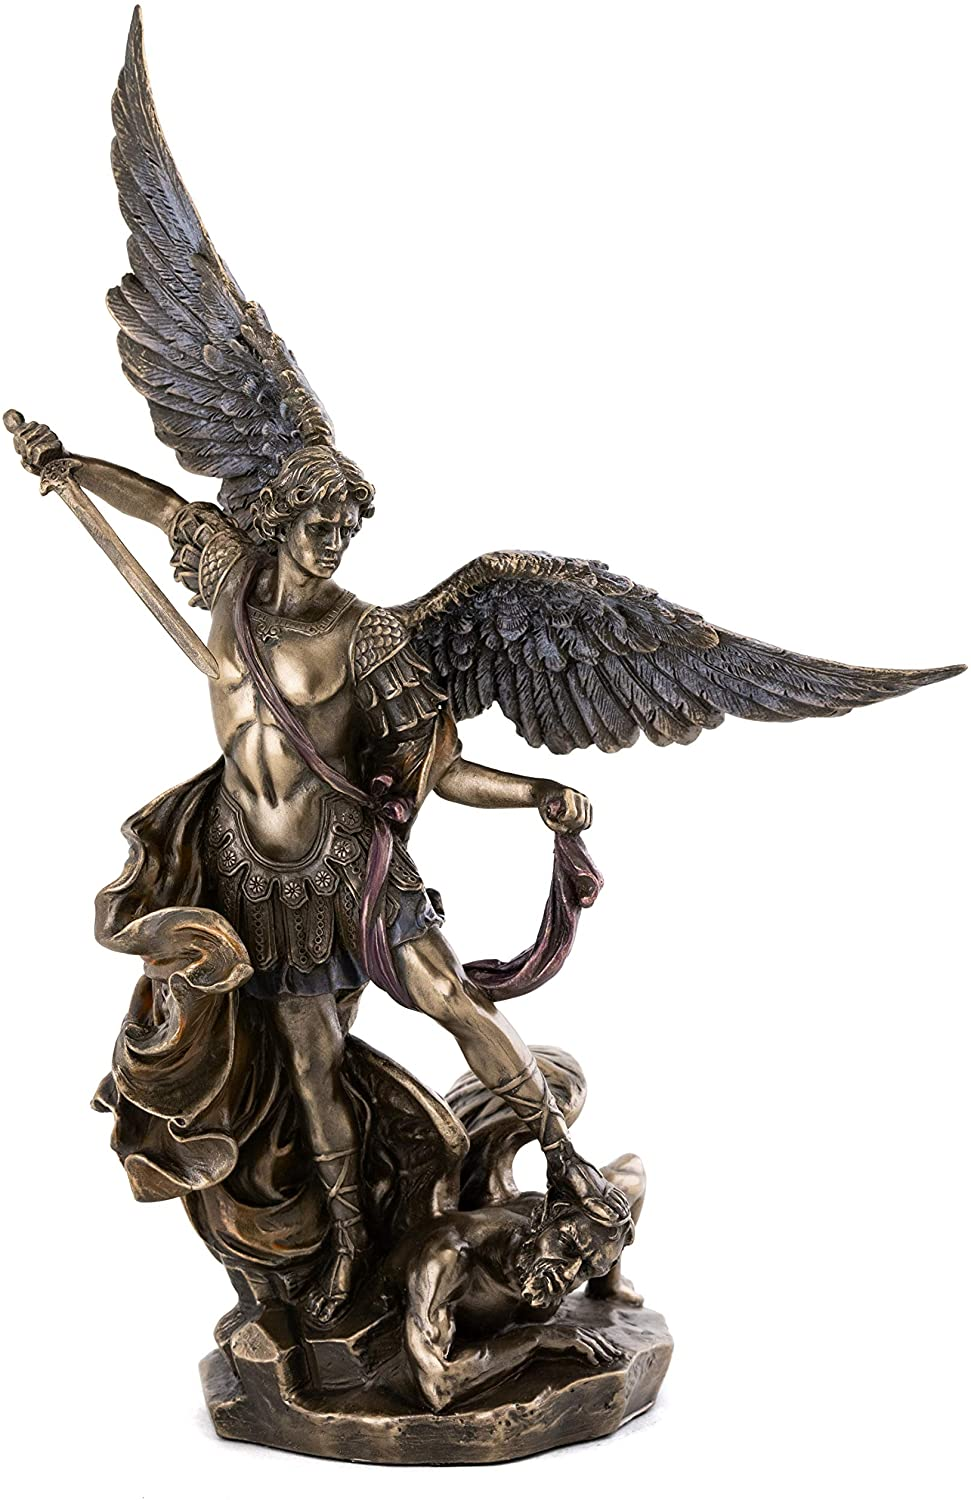 Top Collection Archangel St. Michael Statue - Michael Archangel of Heaven Defeating Lucifer in Premium Cold-Cast Bronze - 10-Inch Collectible Angel Figurine